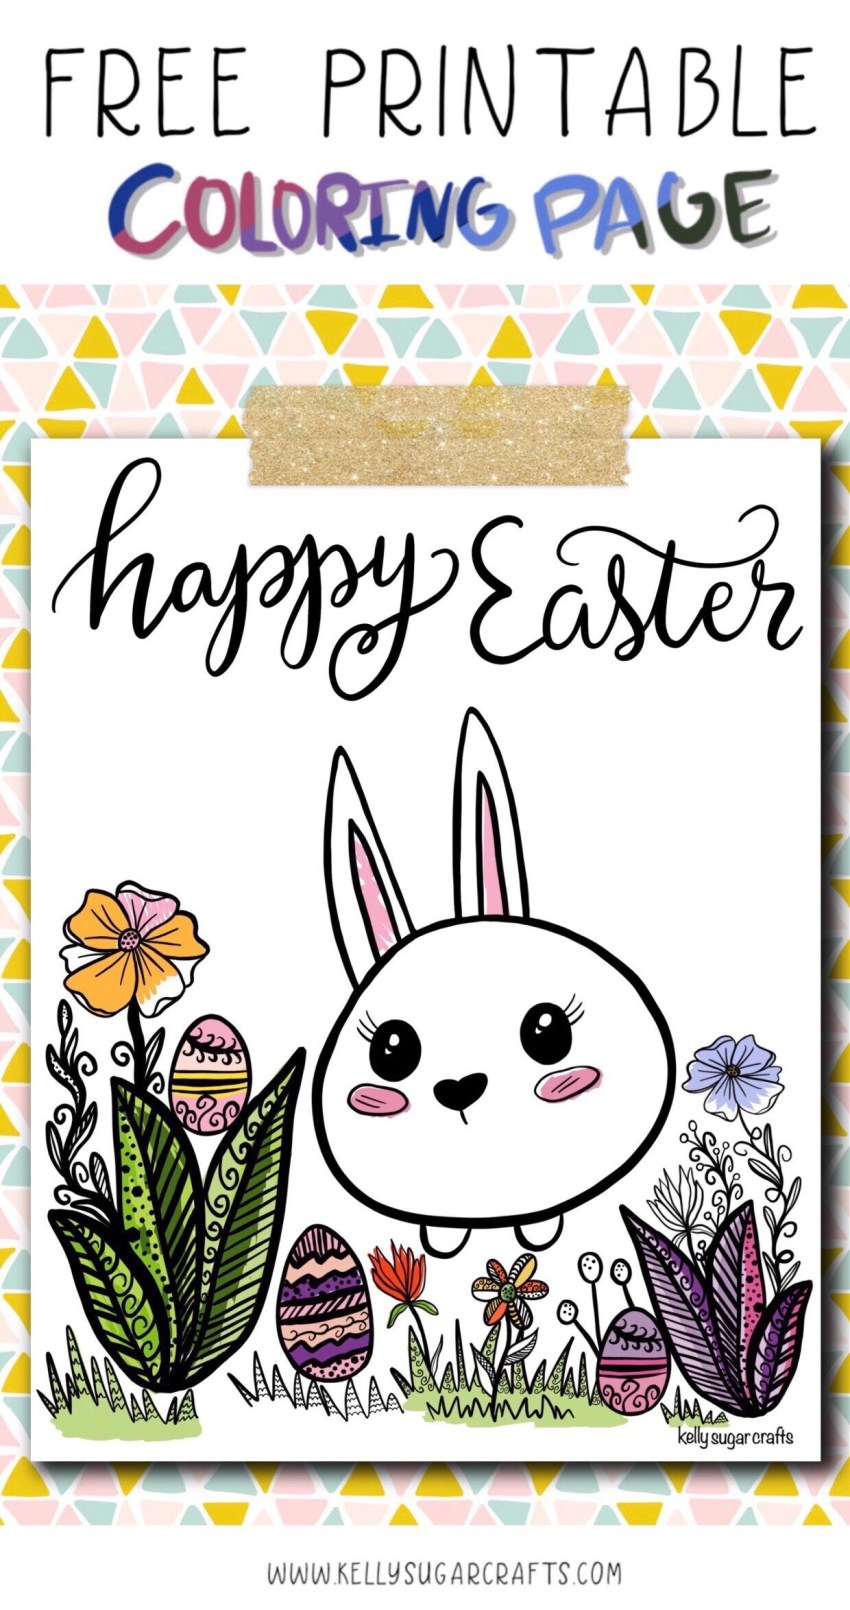 Free Printable Easter Coloring Page for kids and adults by Kelly Sugar Crafts